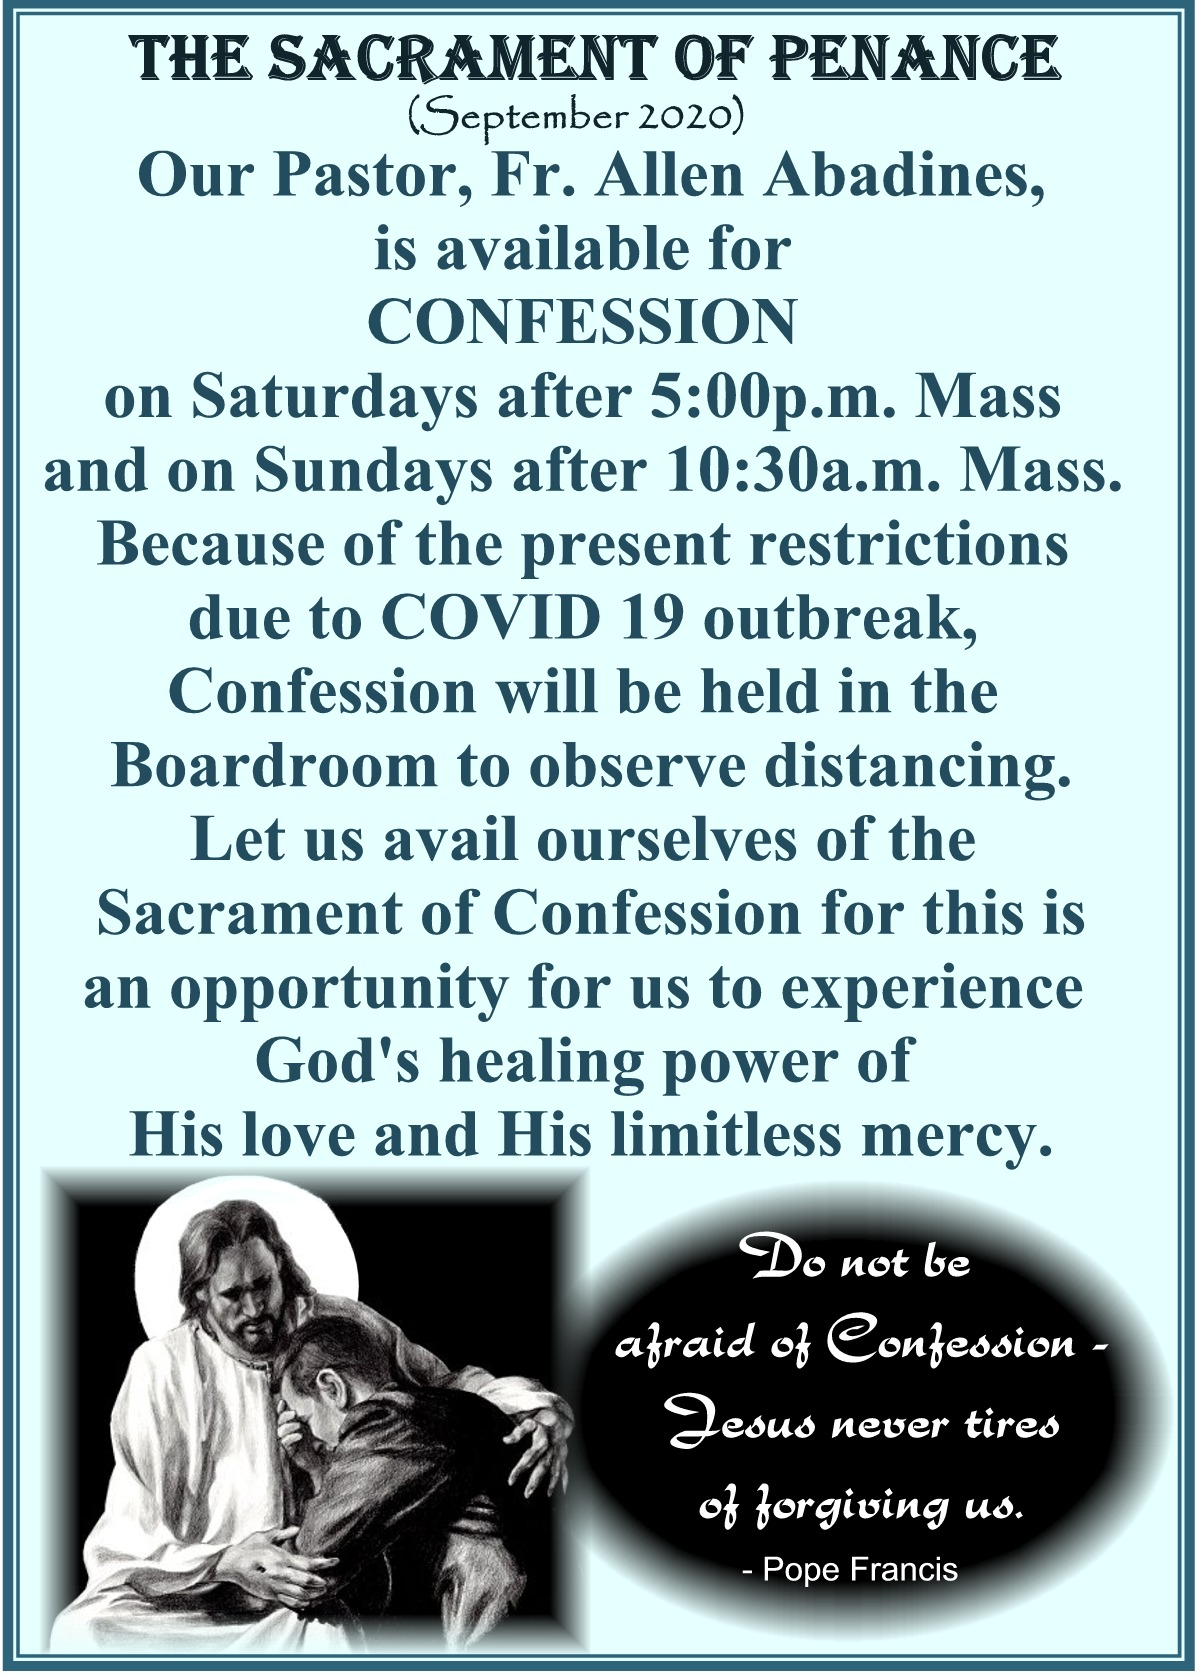 St. Louis - Confession Hours Sept 2020.edited